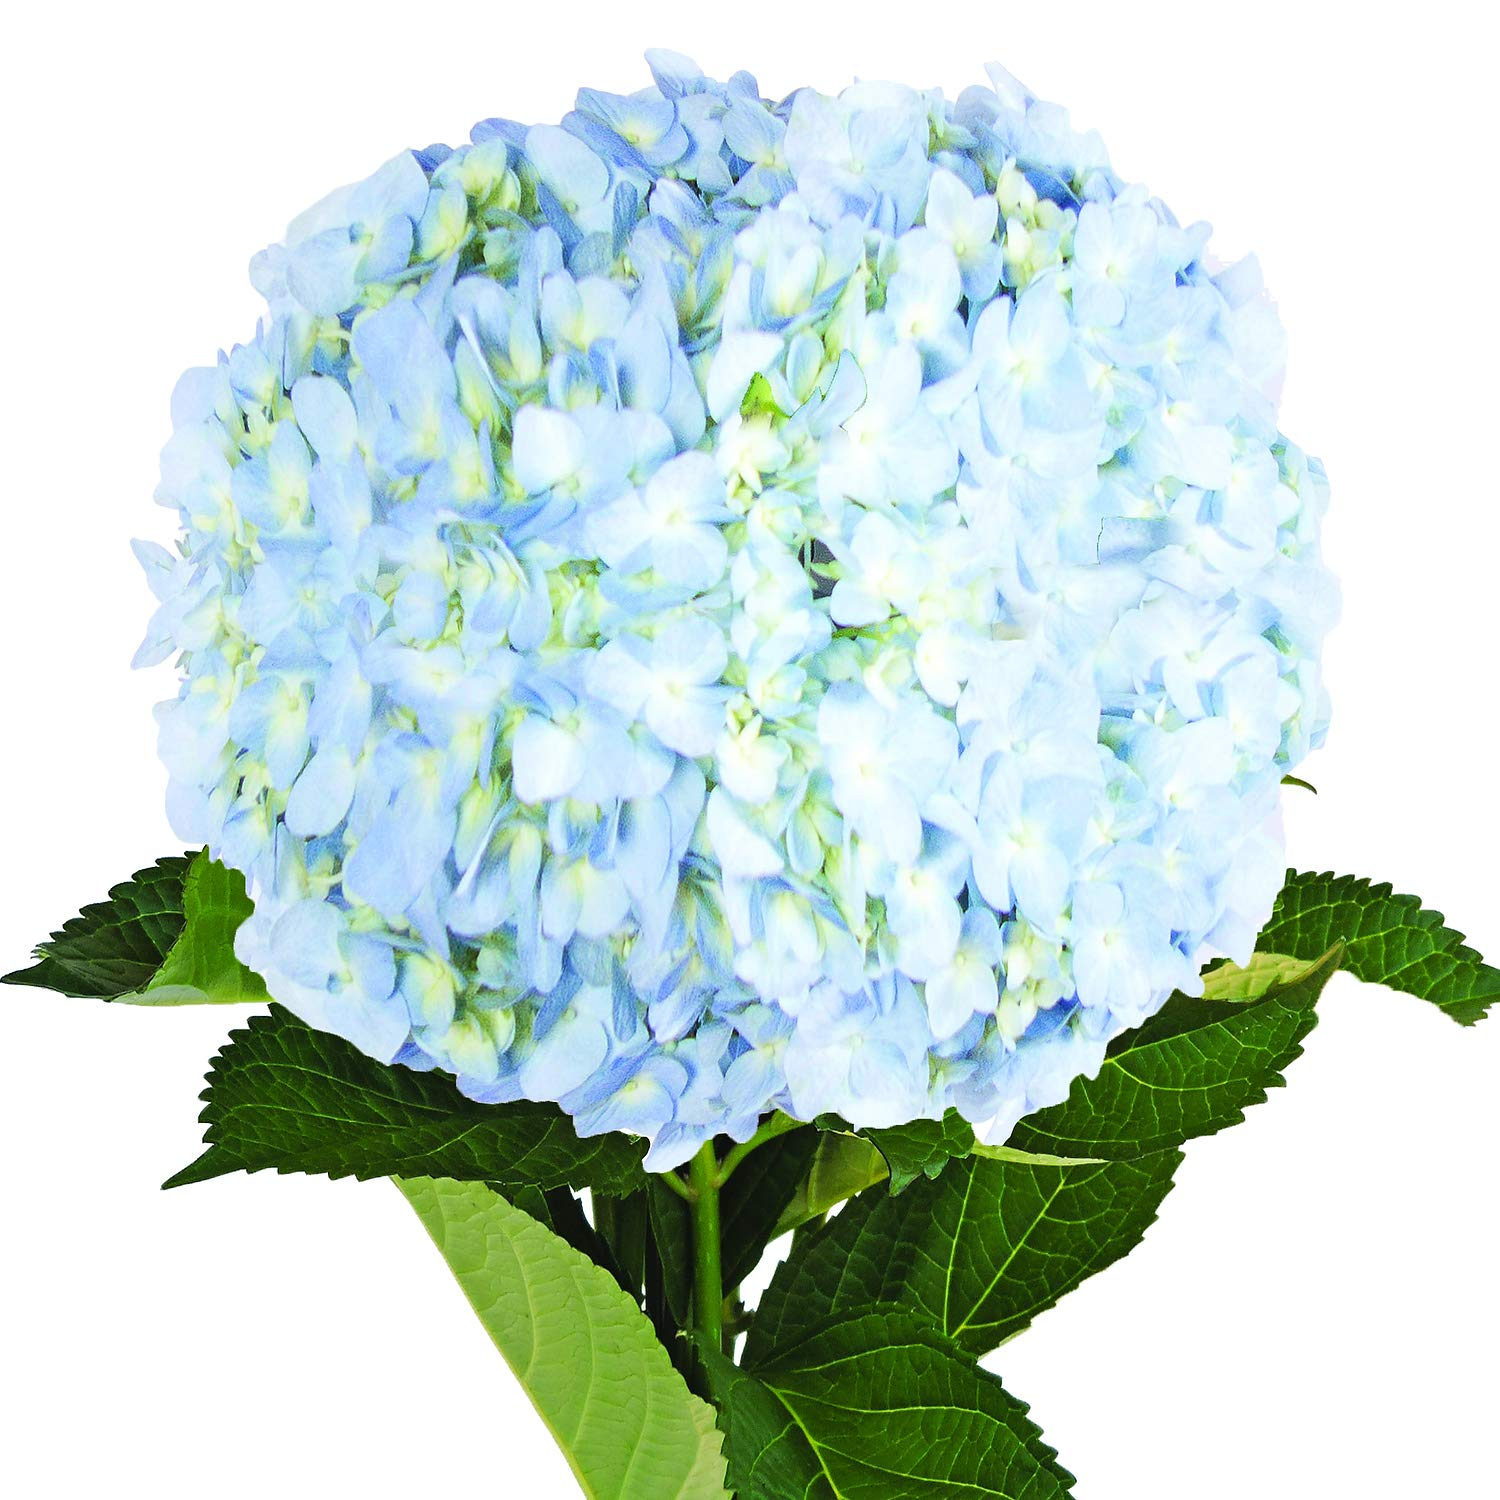 Farm Fresh Natural Jumbo Blue Hydrangeas - Pack 12 by Bloomingmore (Image #1)